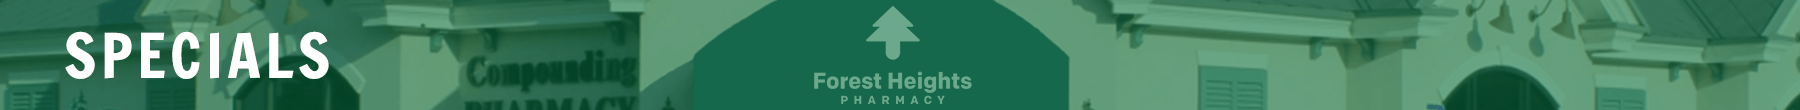 Prescription Coupons | Forest Heights Pharmacy Statesboro GA